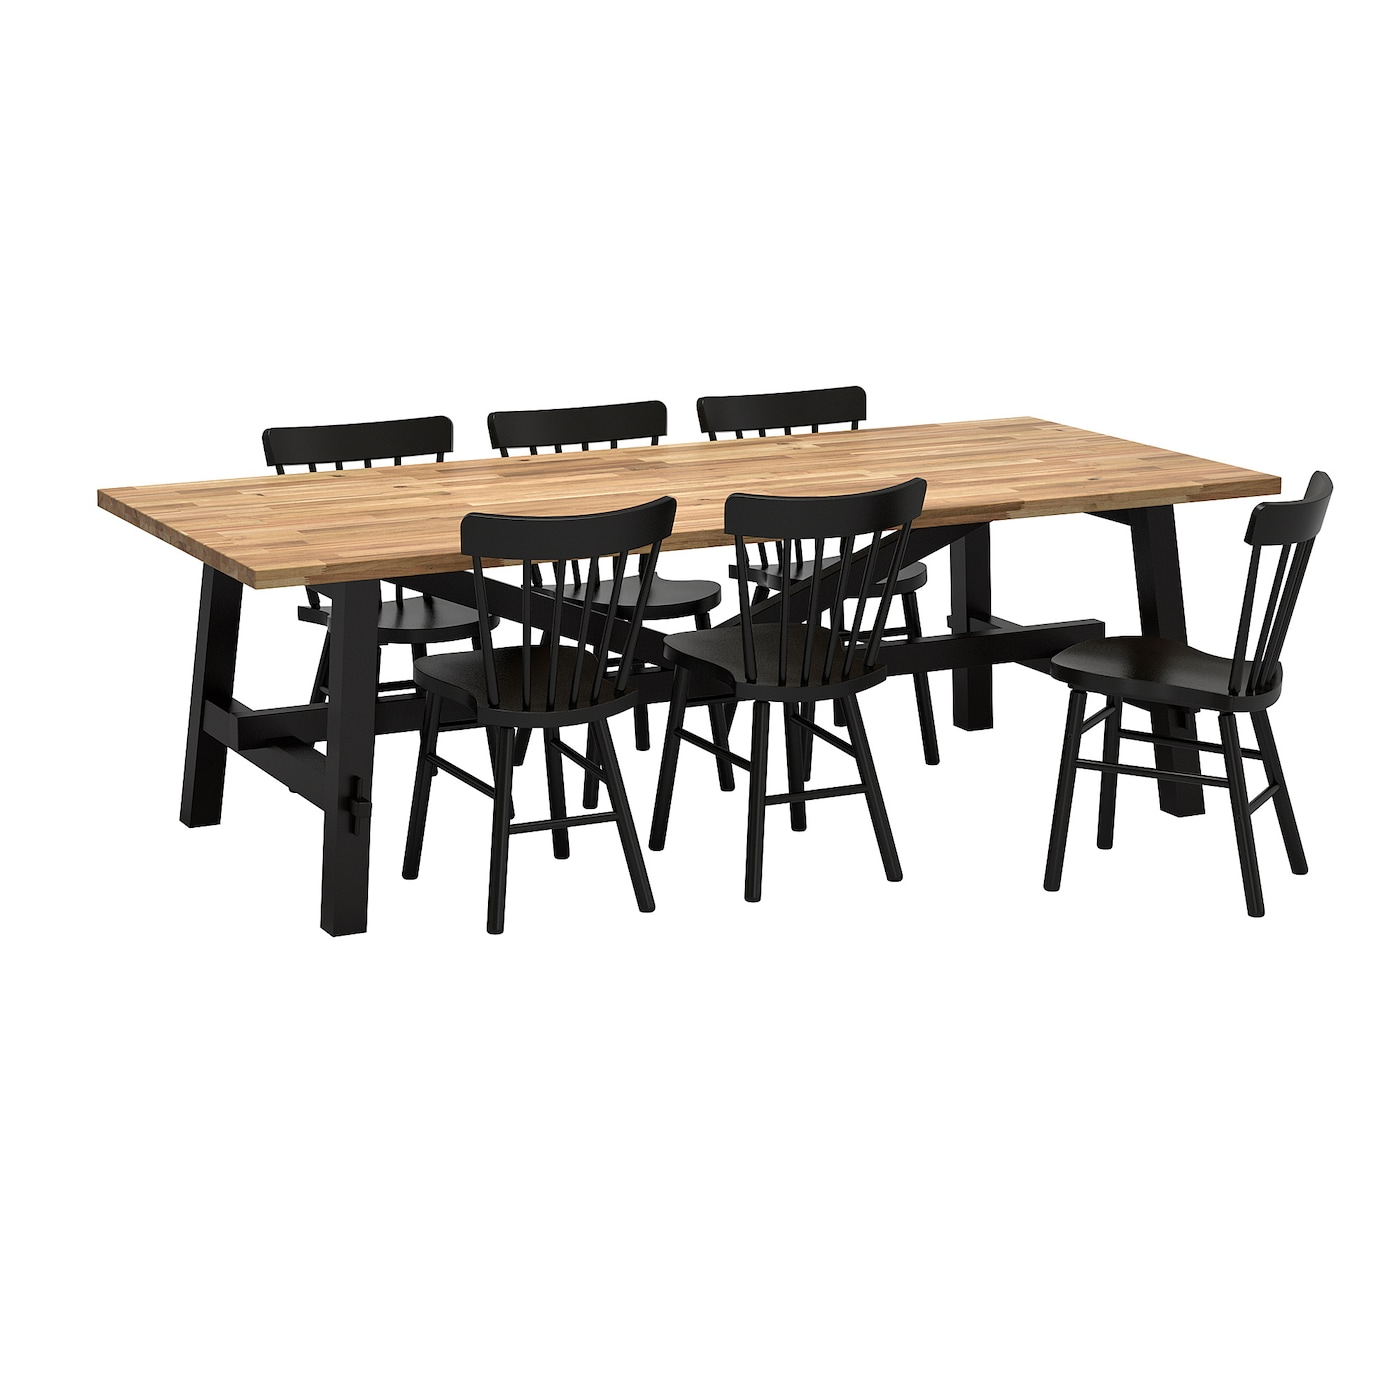 Trendy Acacia Dining Tables With Black Legs Throughout Table And 6 Chairs Skogsta / Norraryd Acacia, Black (View 25 of 30)